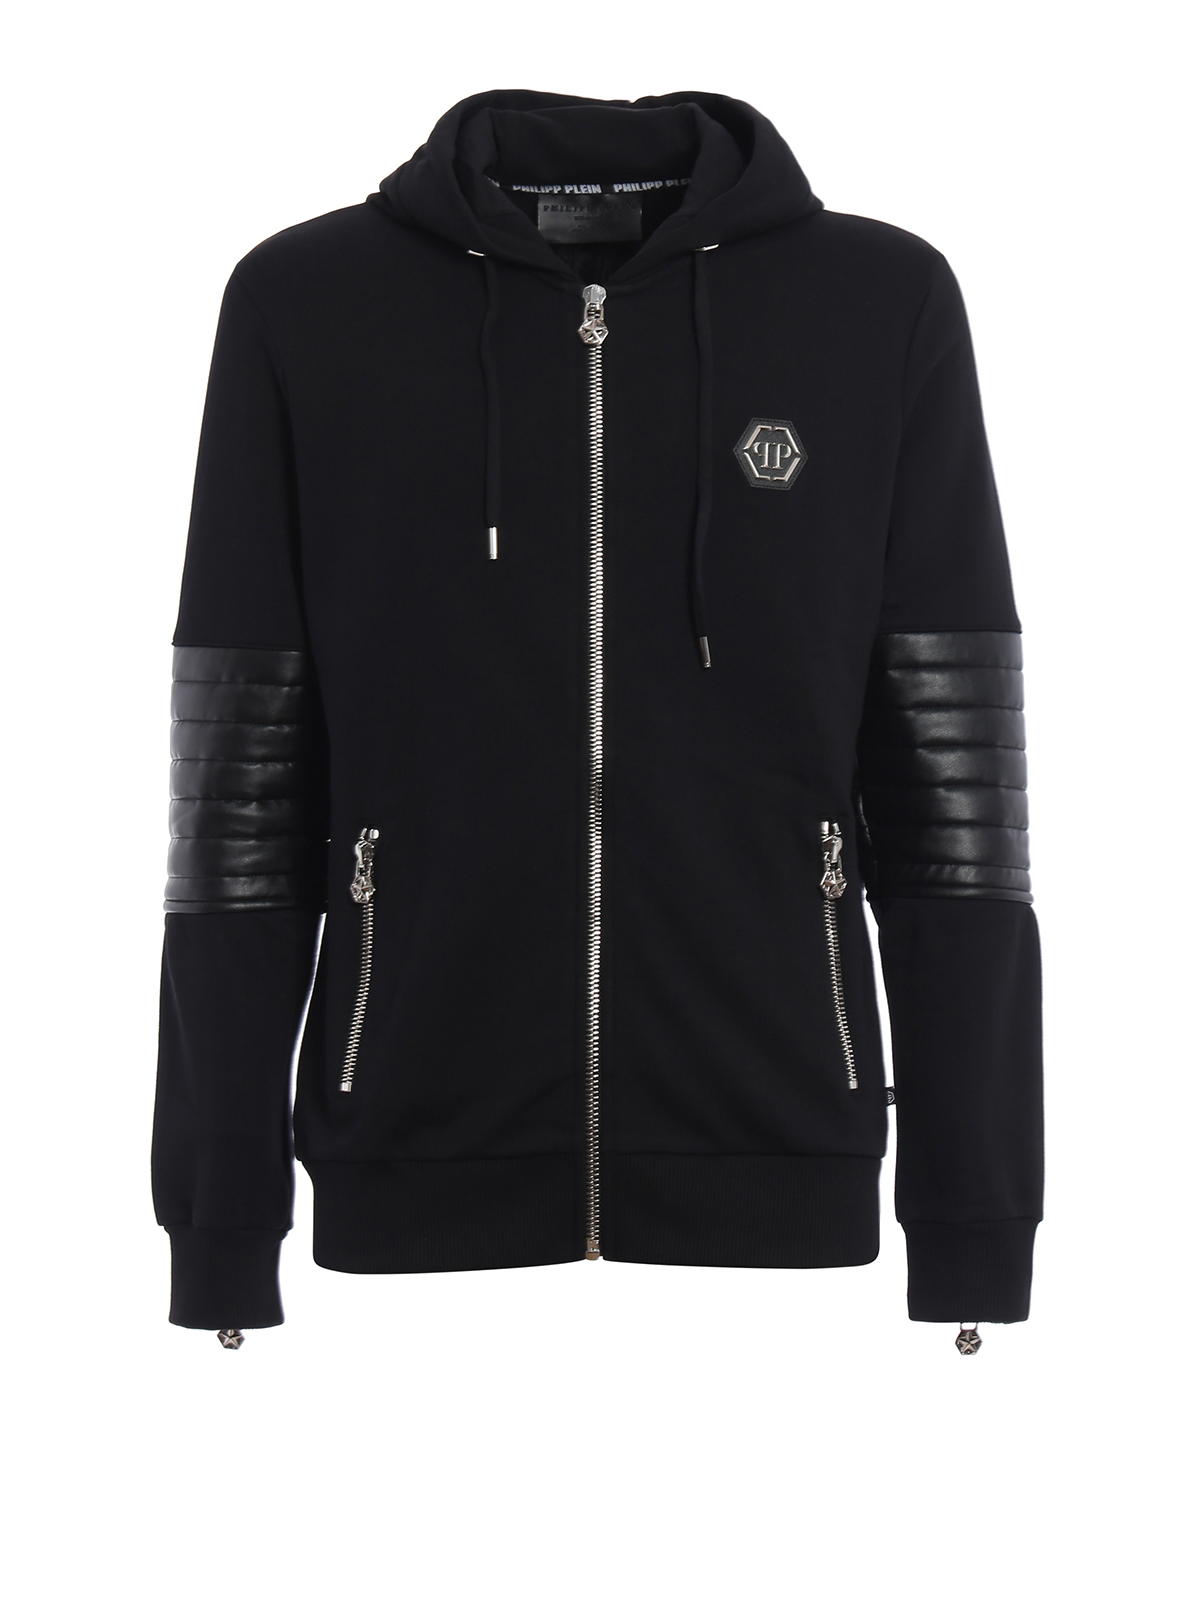 nyorai hooded sweat jacket by philipp plein sweatshirts sweaters shop online at. Black Bedroom Furniture Sets. Home Design Ideas